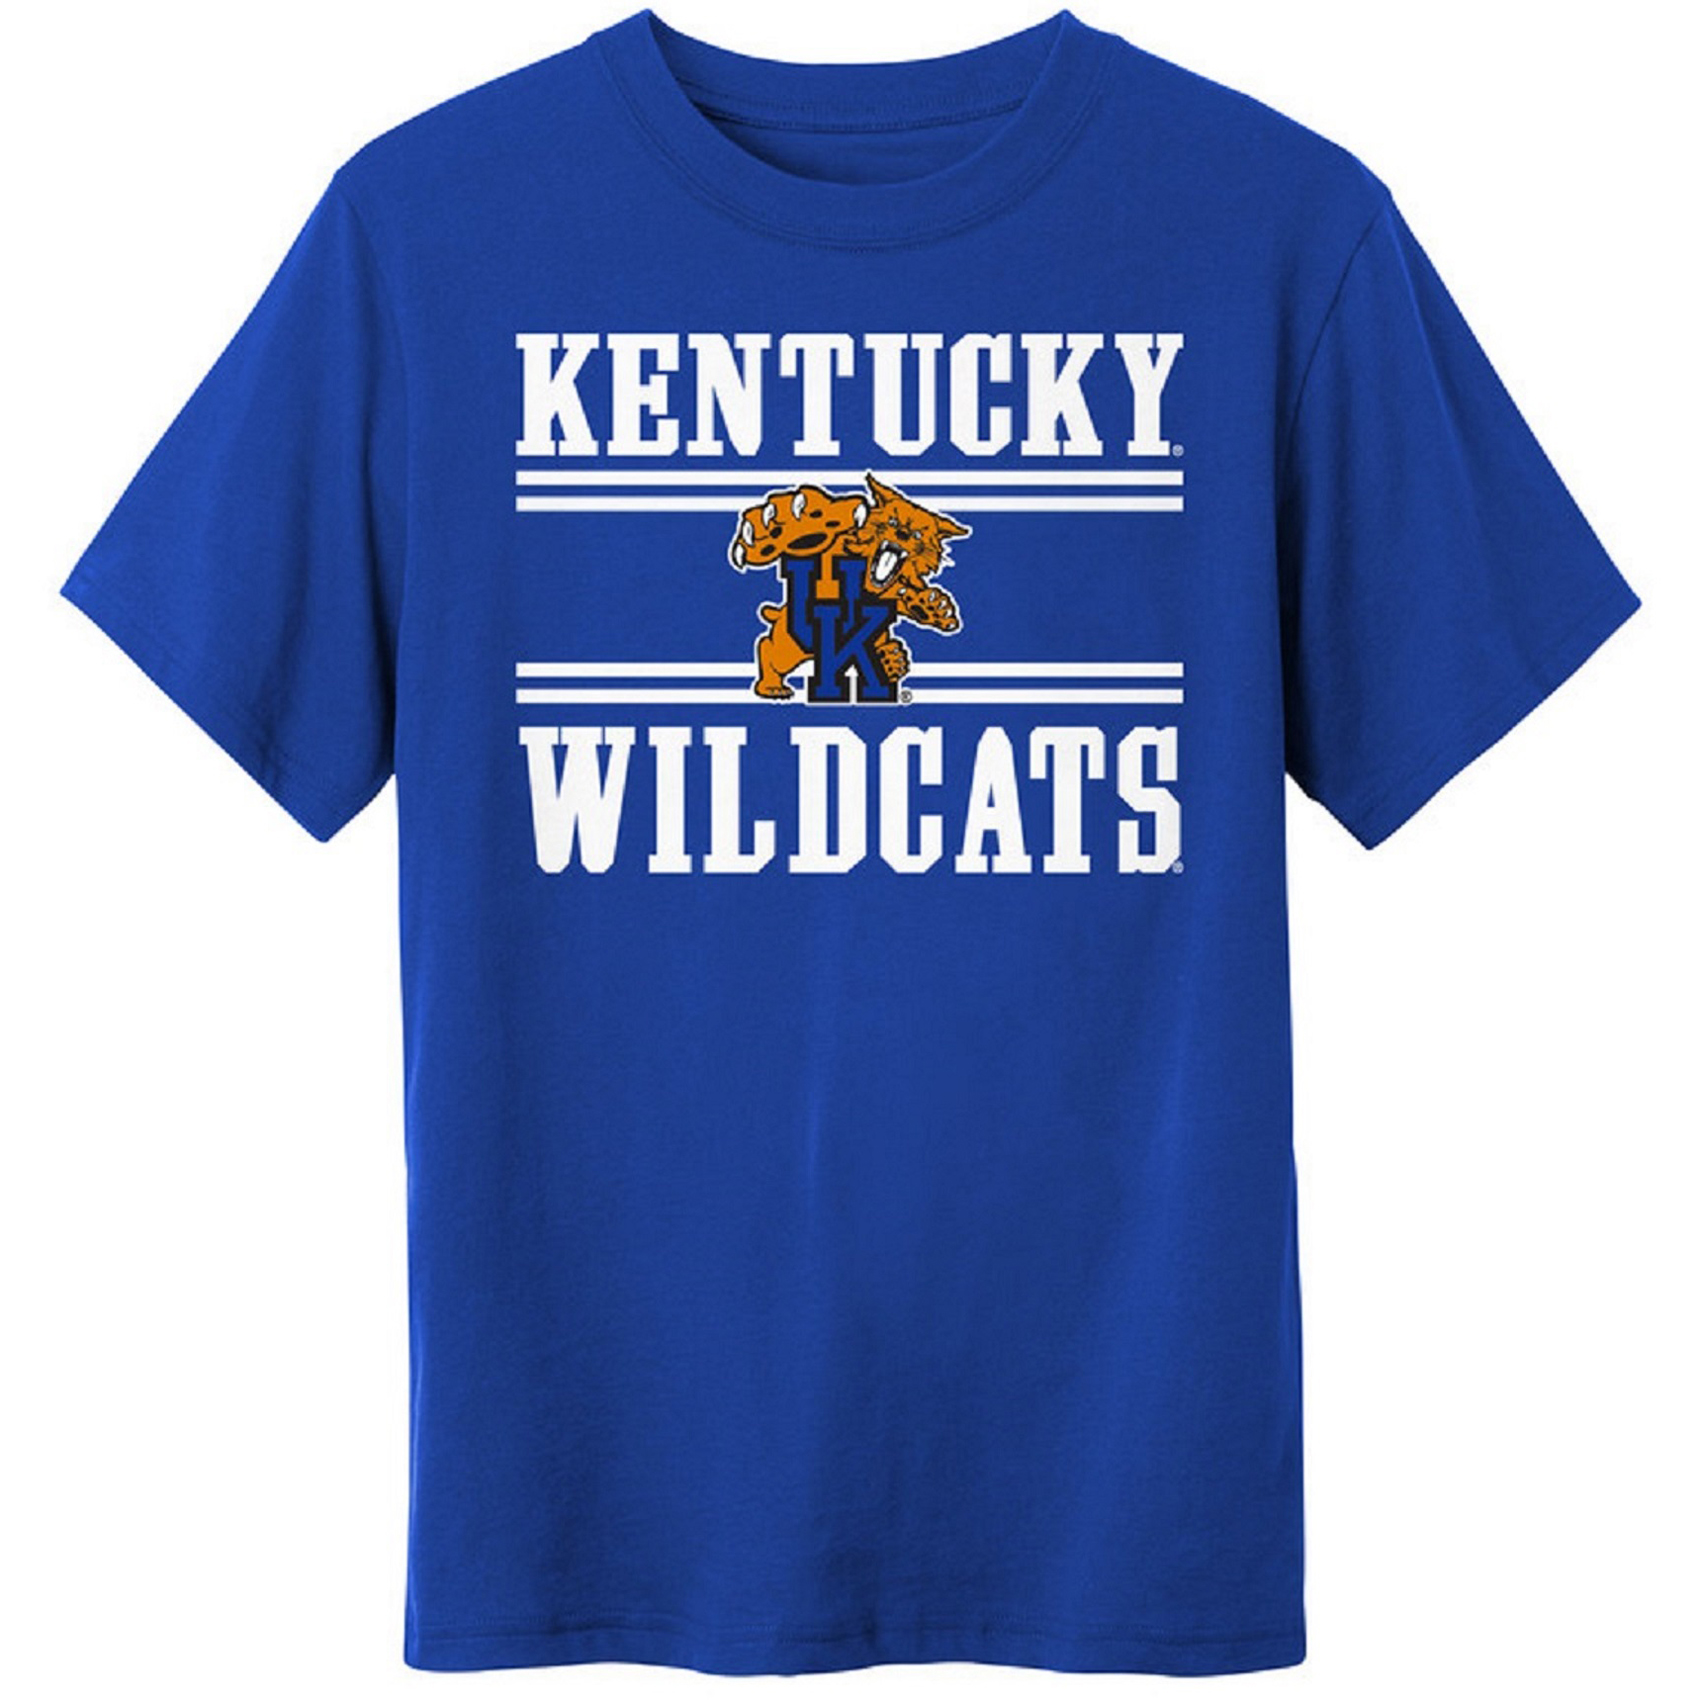 Youth Royal Kentucky Wildcats Team Color T-Shirt